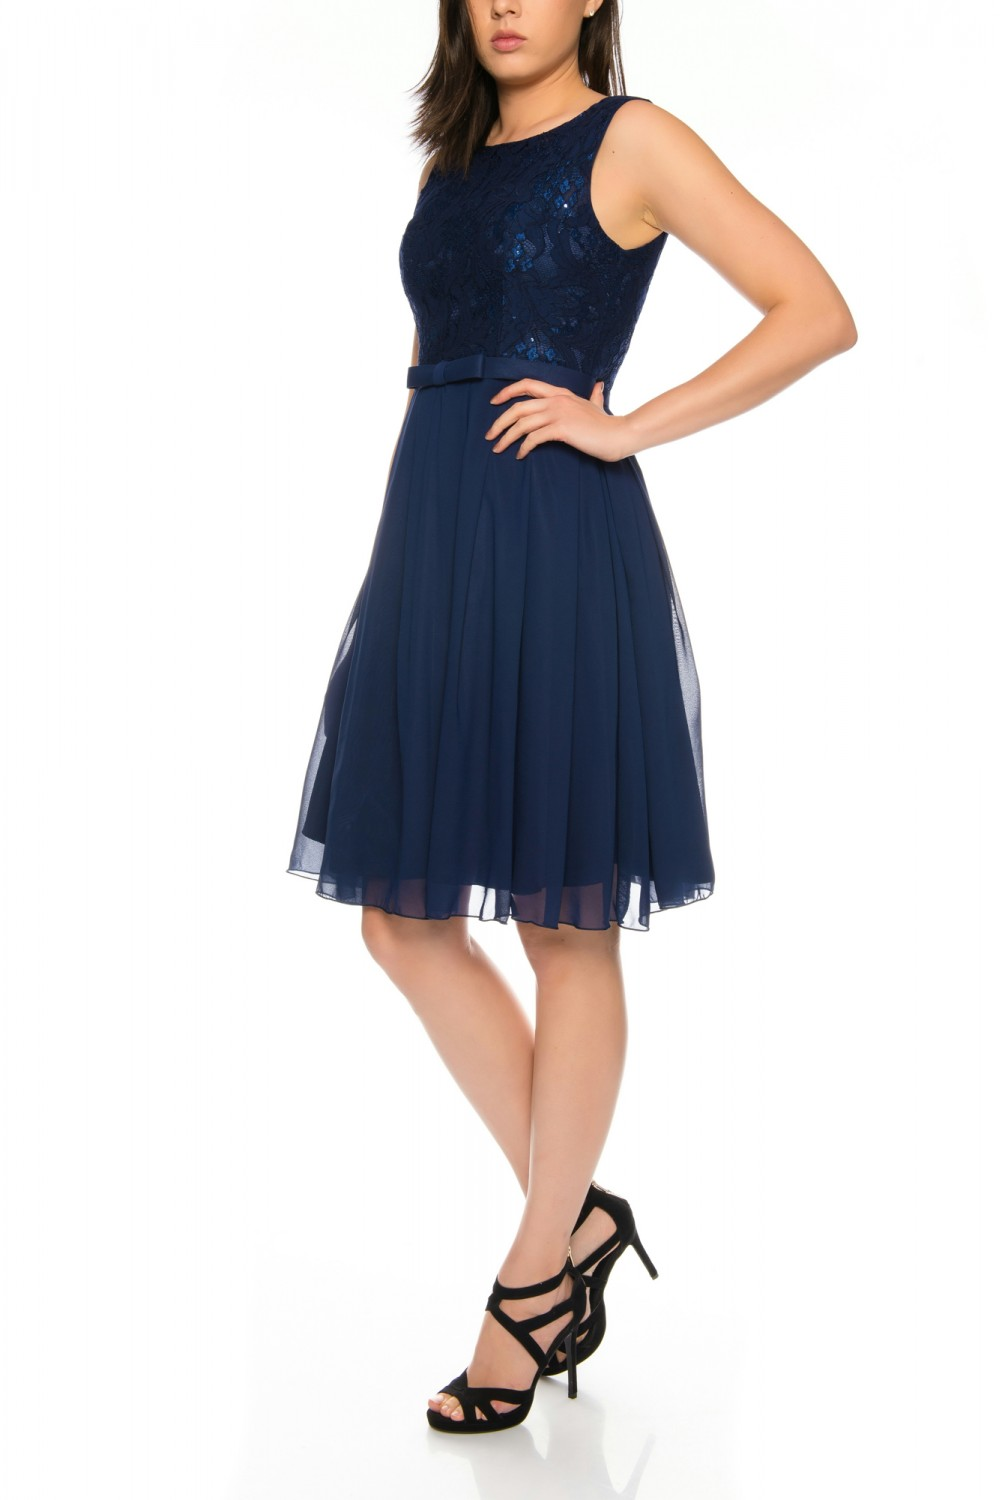 Elegant Cocktail Dress with Lace Top and Skirt in Chiffon -R1579